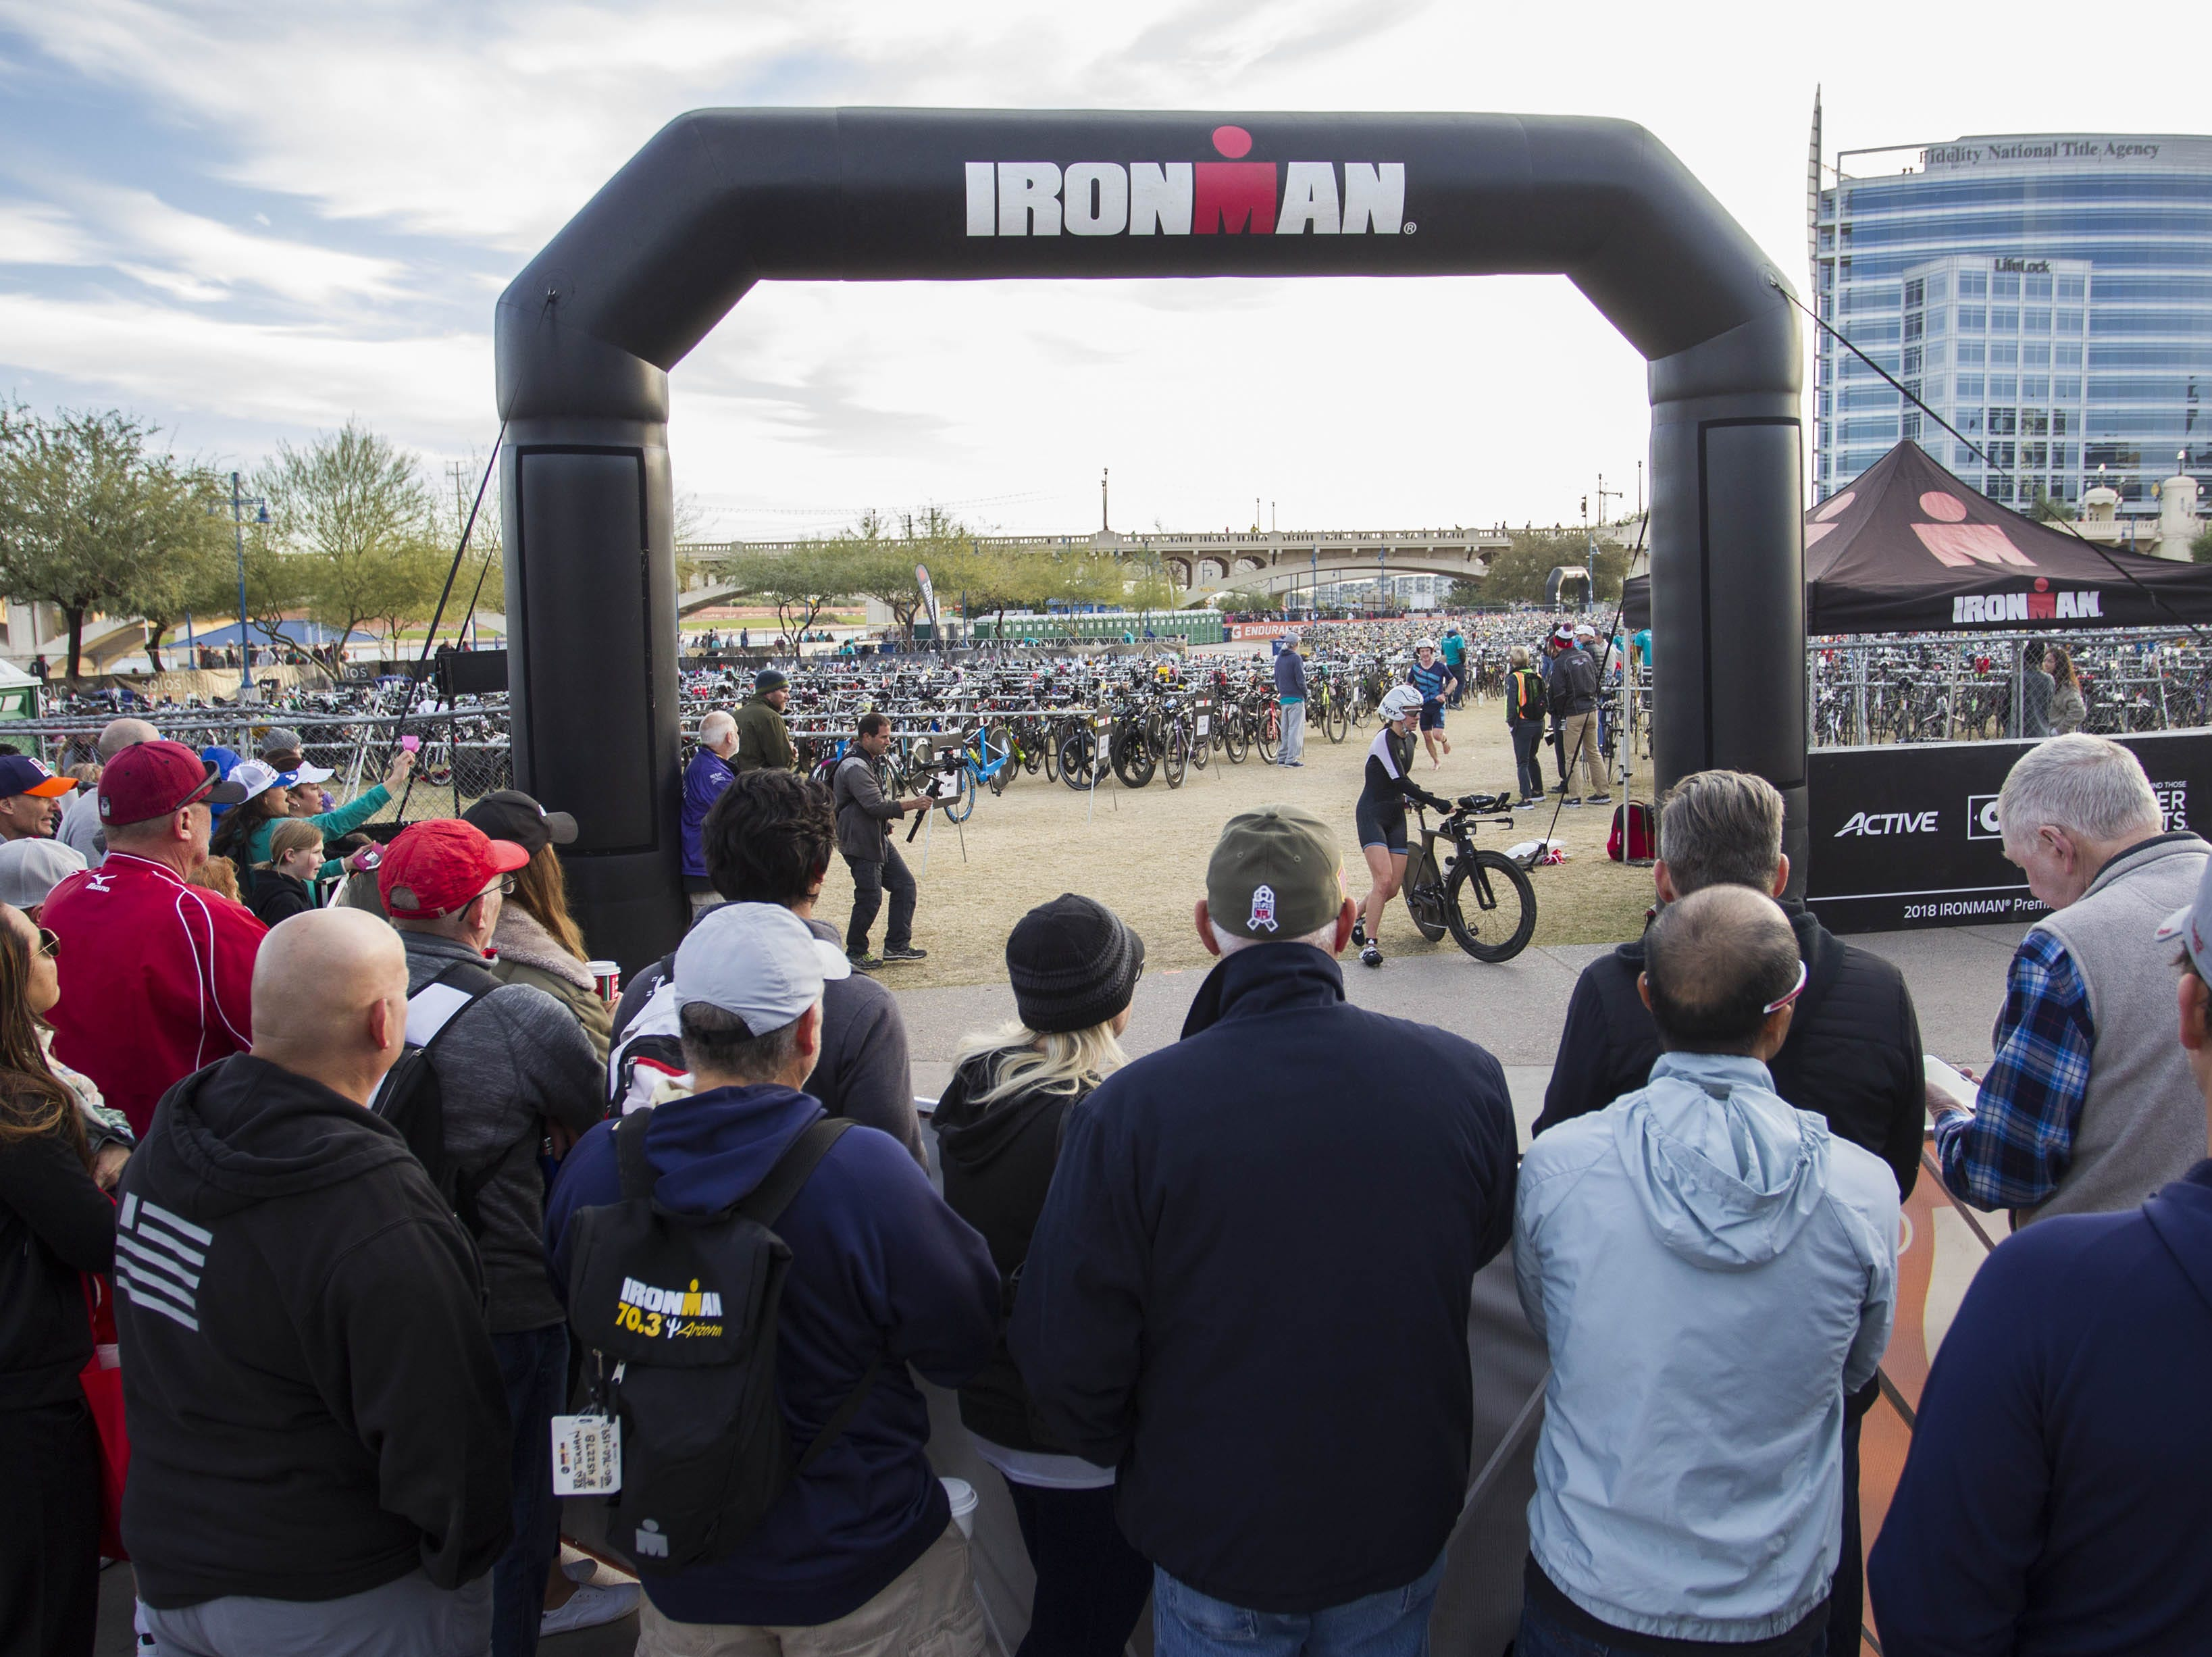 Fans of Ironman competitors watch as athletes start the bike portion of the race during the Tempe Ironman at Tempe Town Lake Nov.18, 2018.